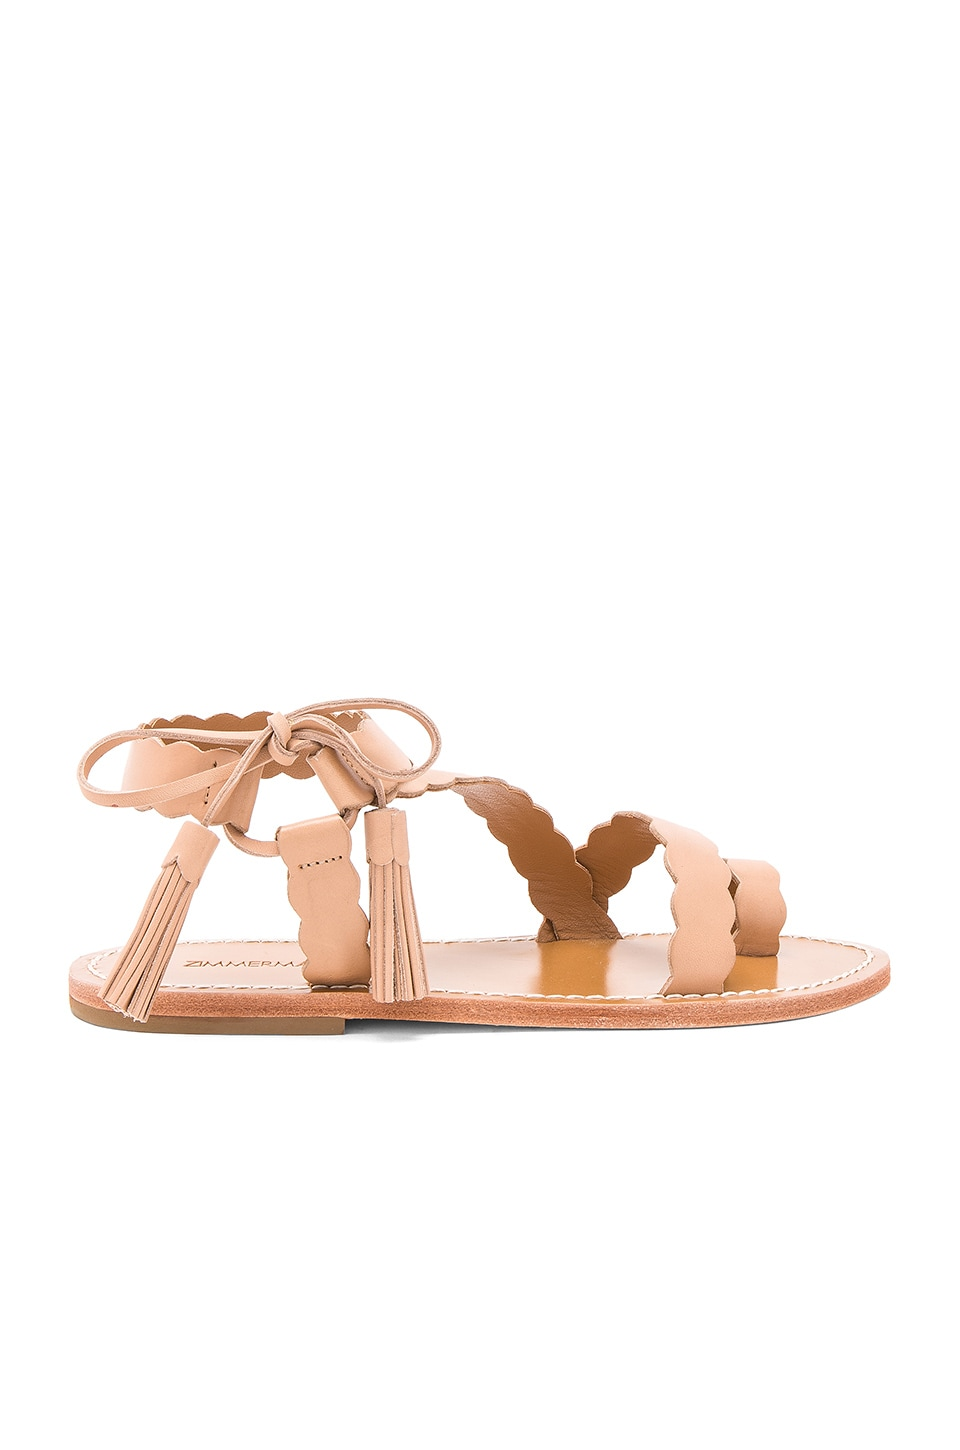 Scallop Tie Sandal by Zimmermann